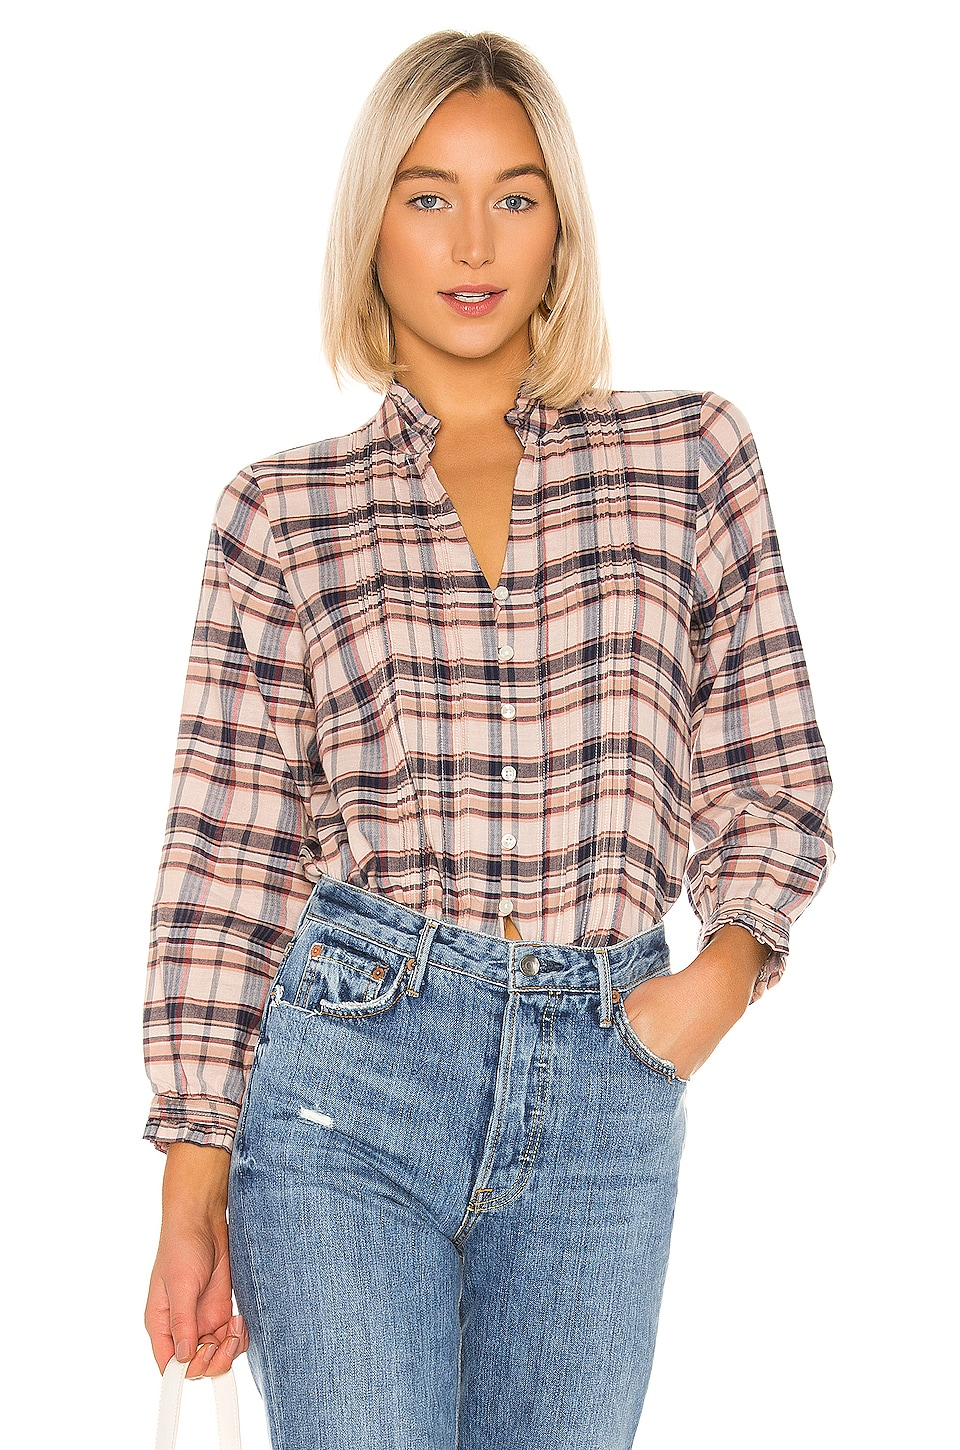 Birds of Paradis by Trovata Finley Pintuck Blouse in Blush Plaid